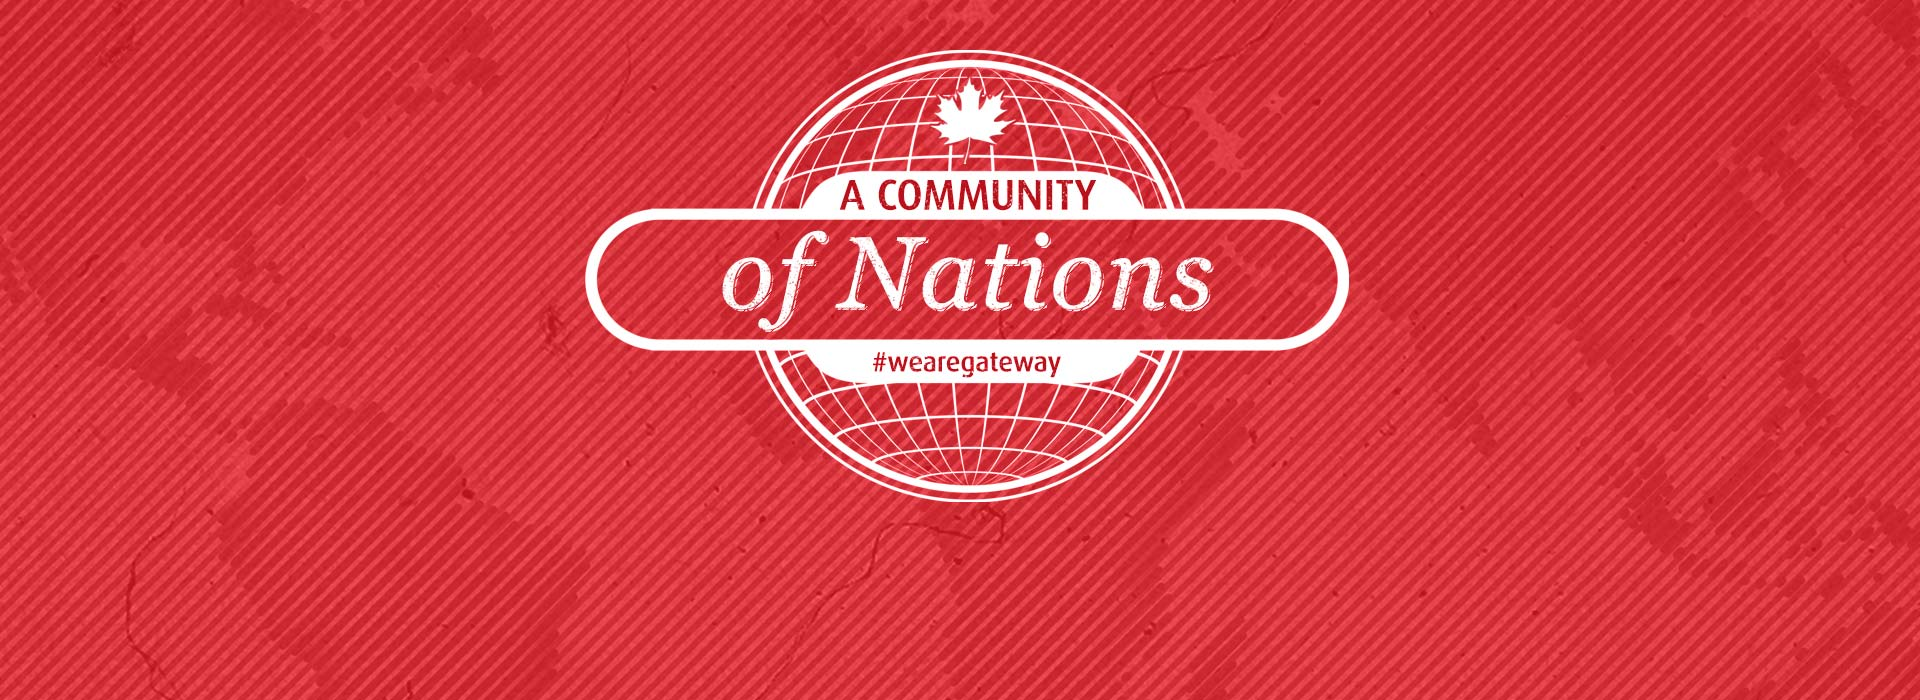 a community of nations